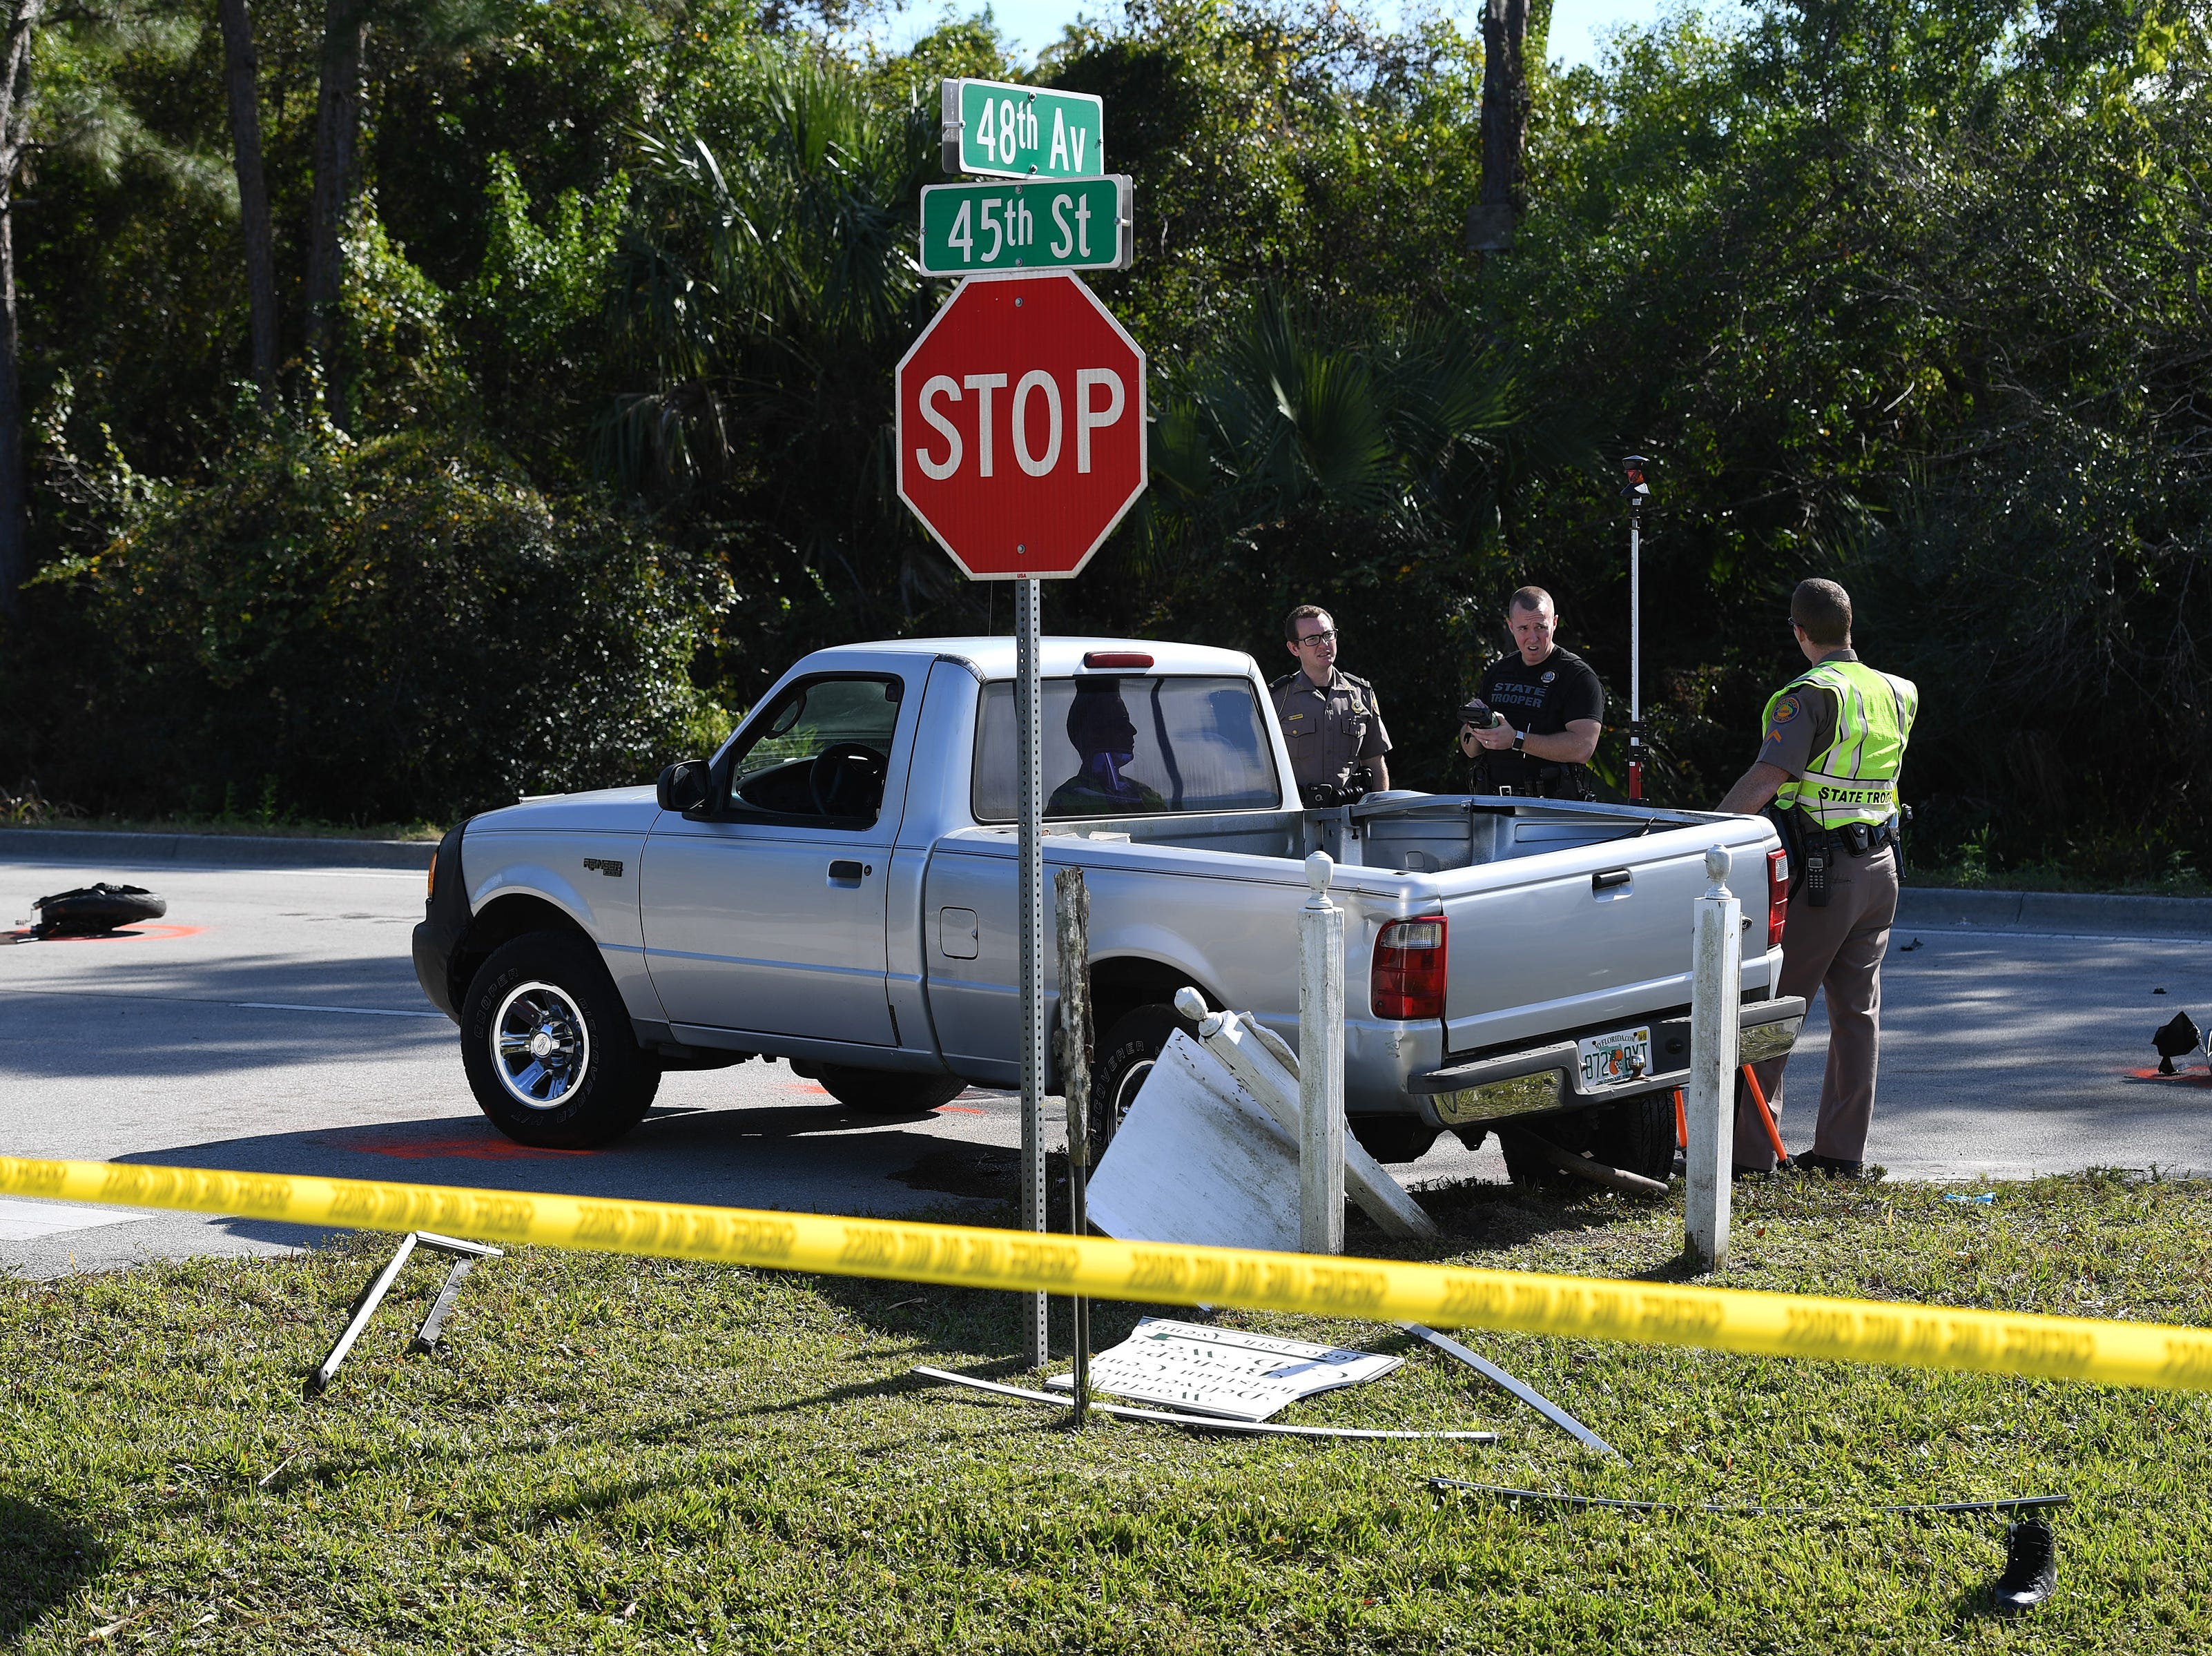 Florida Highway Patrol and Indian River County Sheriffs Office investigate a crash involving a motorcycle and a pick up truck on Wednesday, Dec. 26, 2018, at the intersection of 48th Ave. and 45th St. in Gifford.